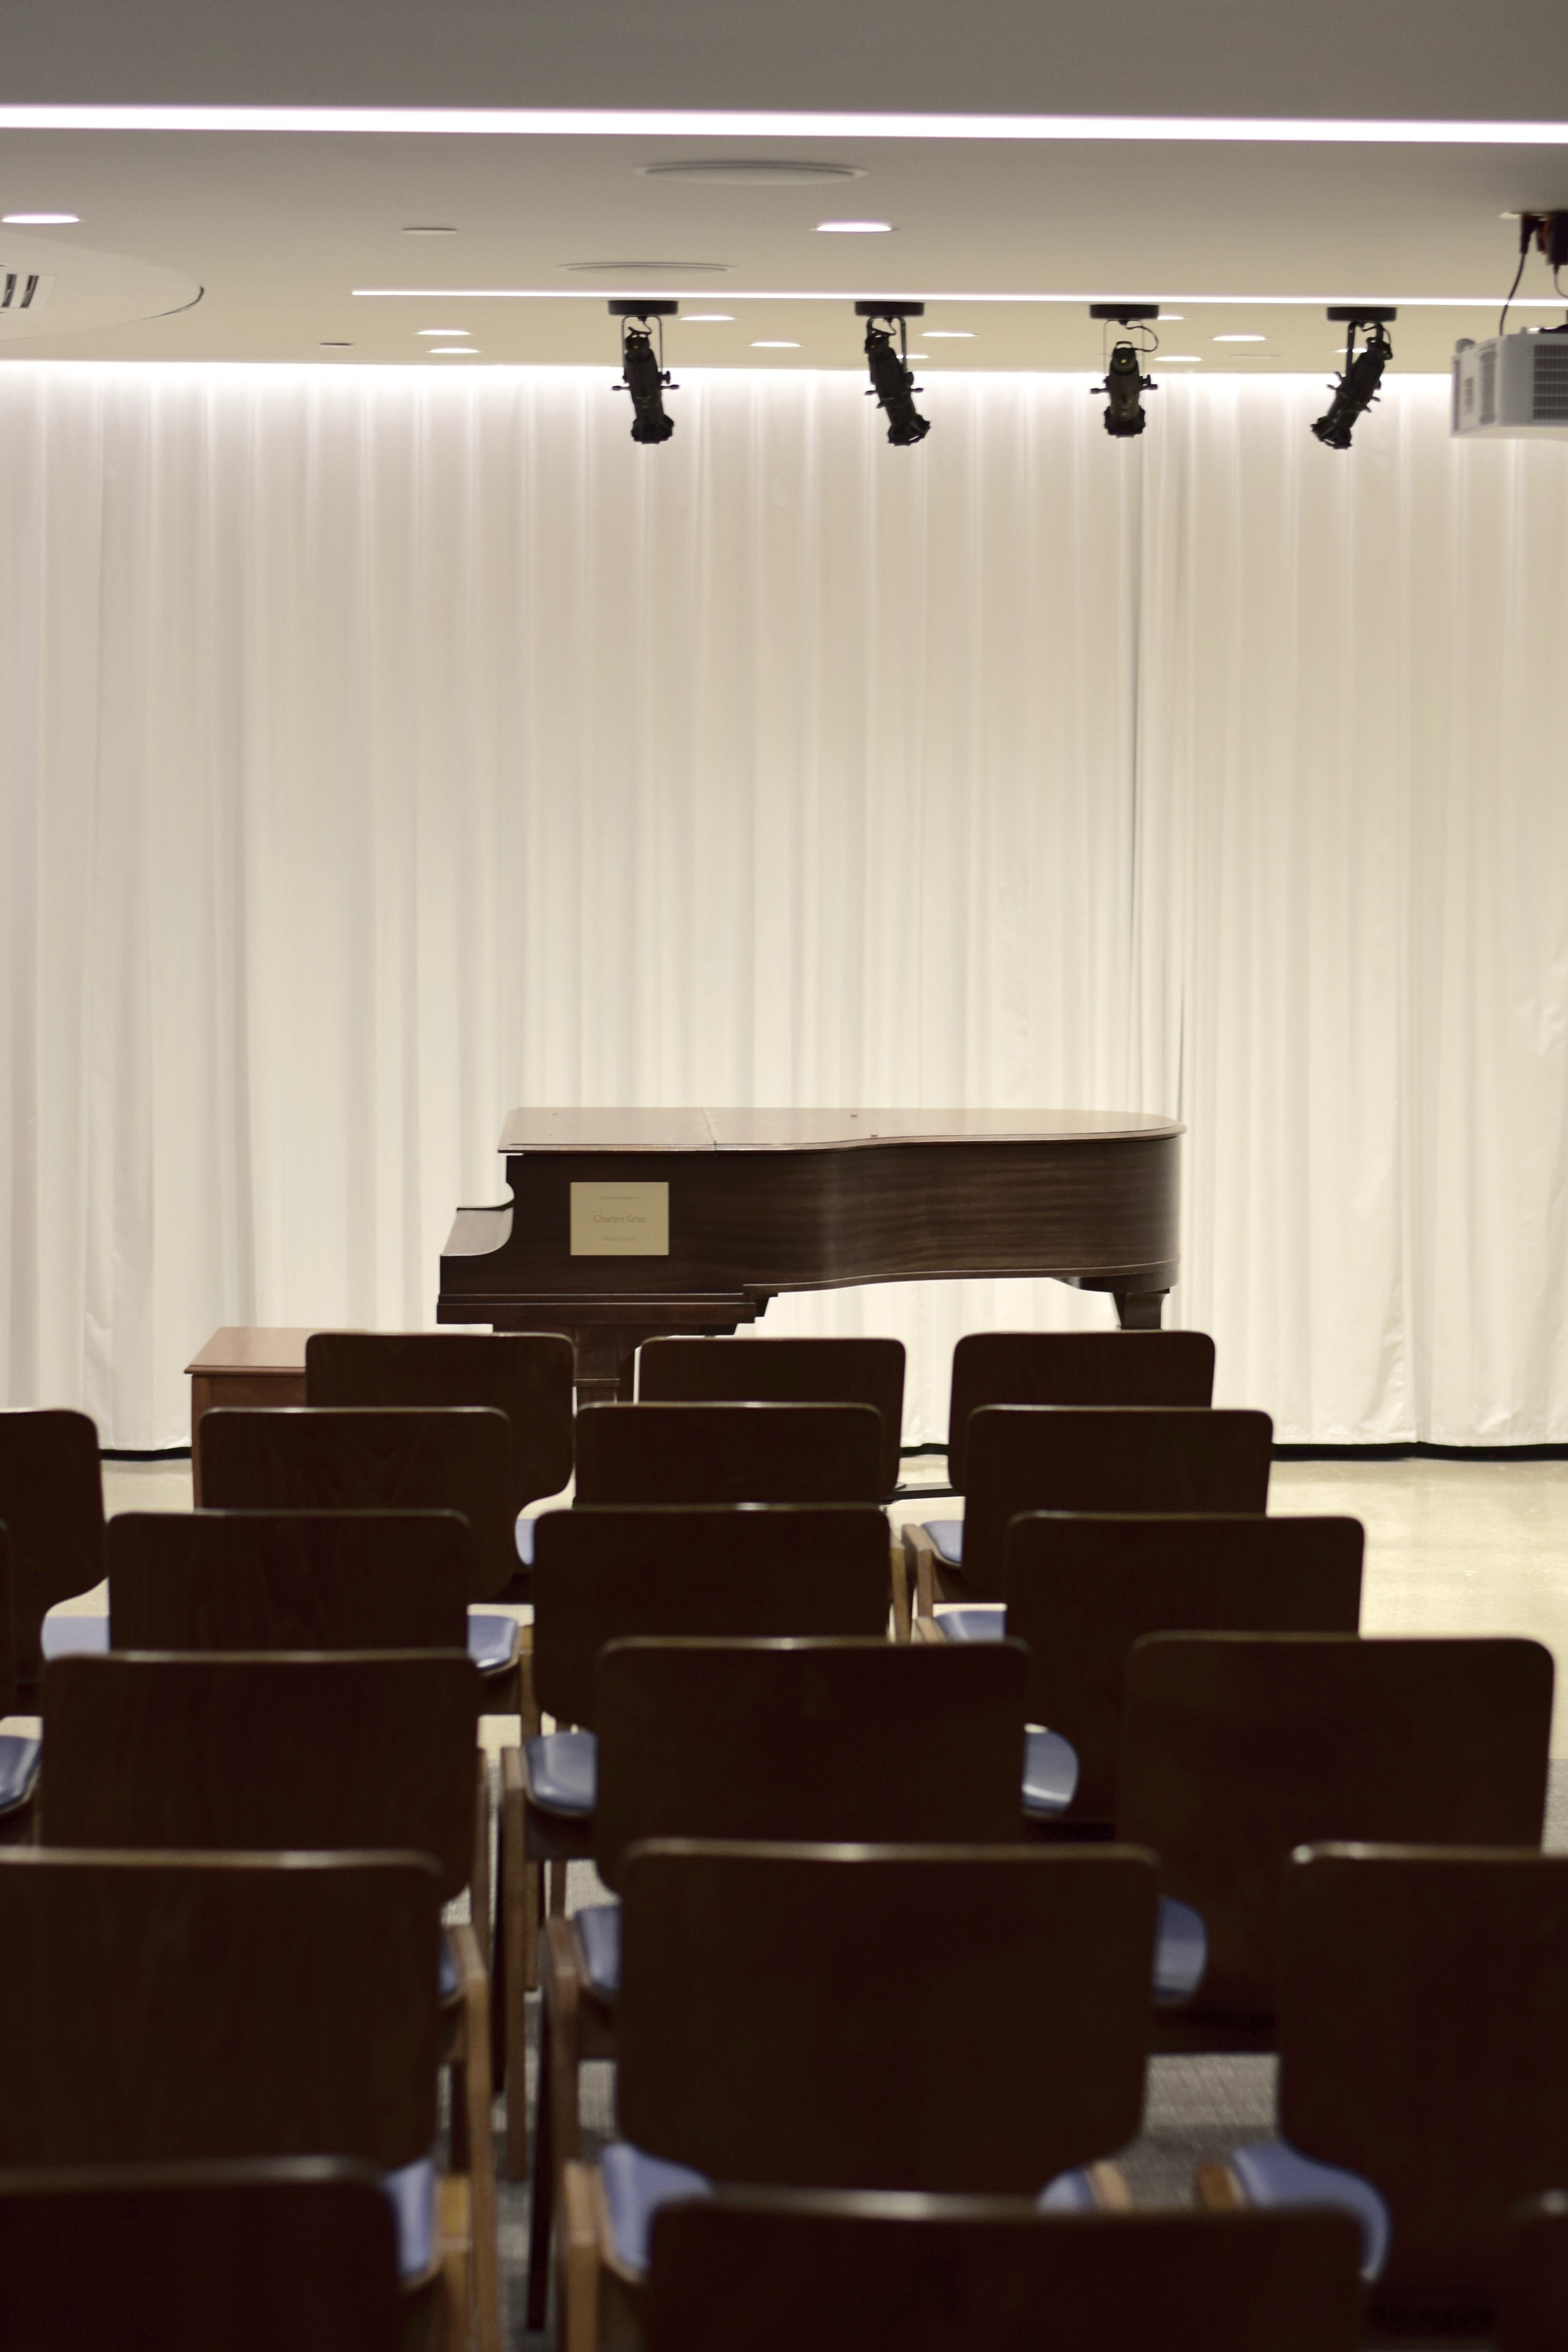 Omaha Conservatory of Music's recital hall